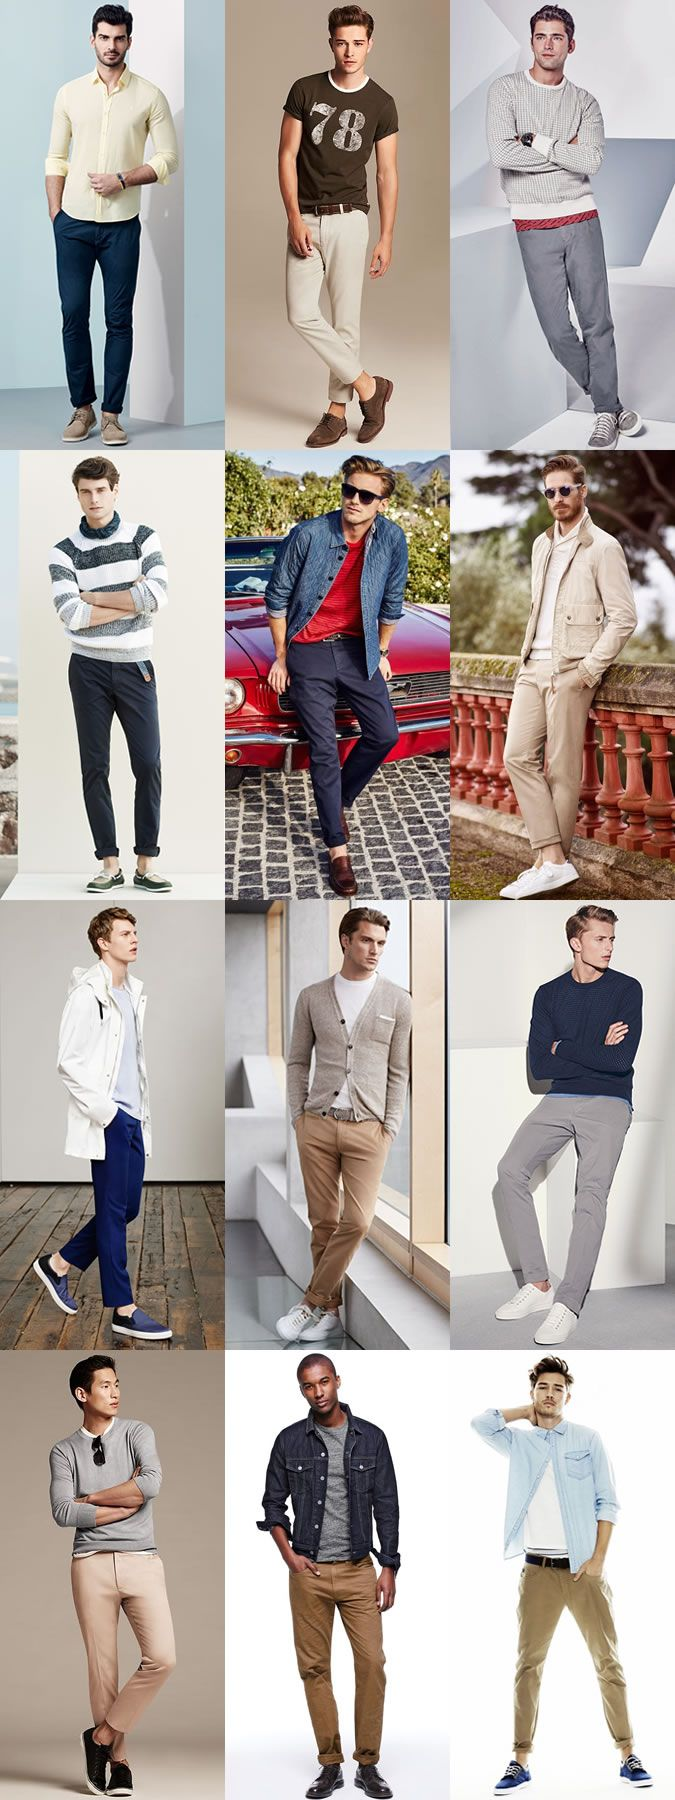 2015 Spring/Summer Men's Chinos Guide: Casual Style Lookbook Inspiration